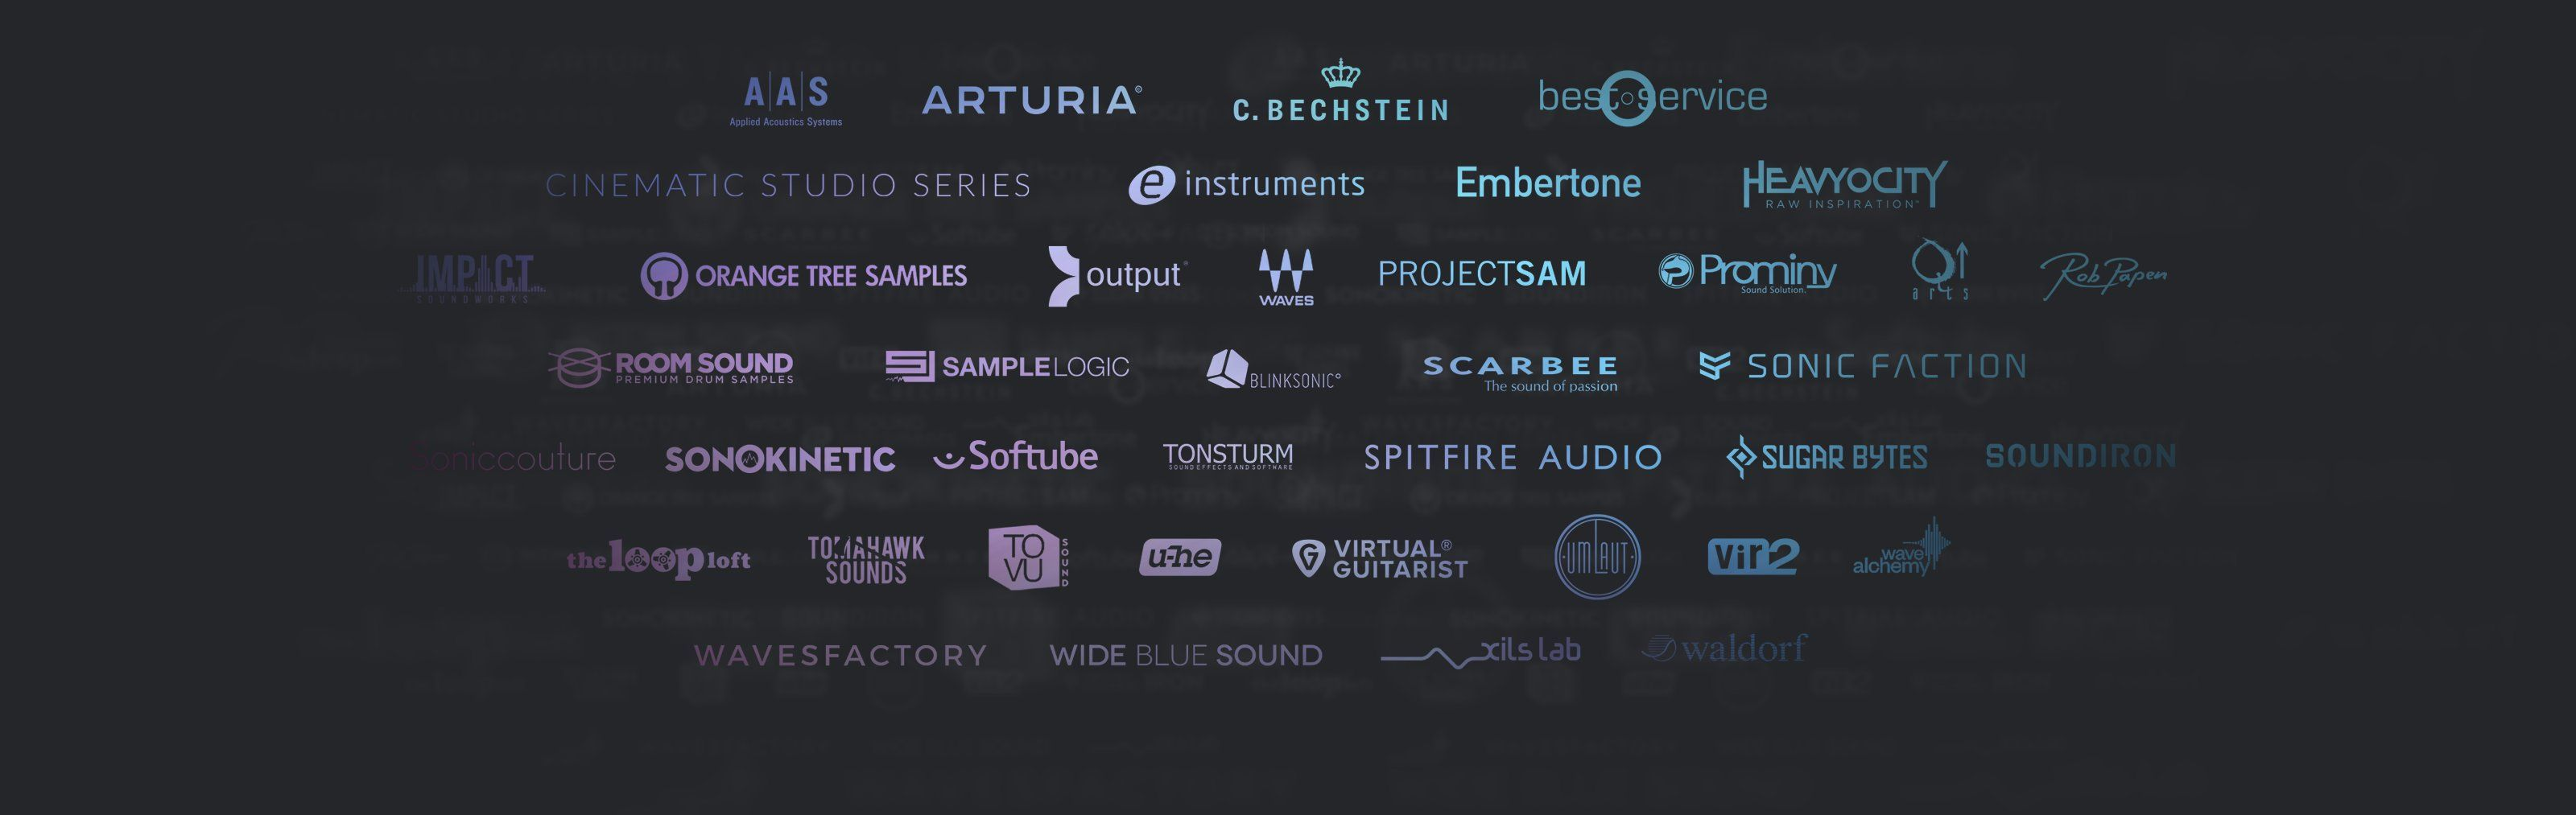 You can add Waves Audio to this impressive list of NKS format plug-in partners.